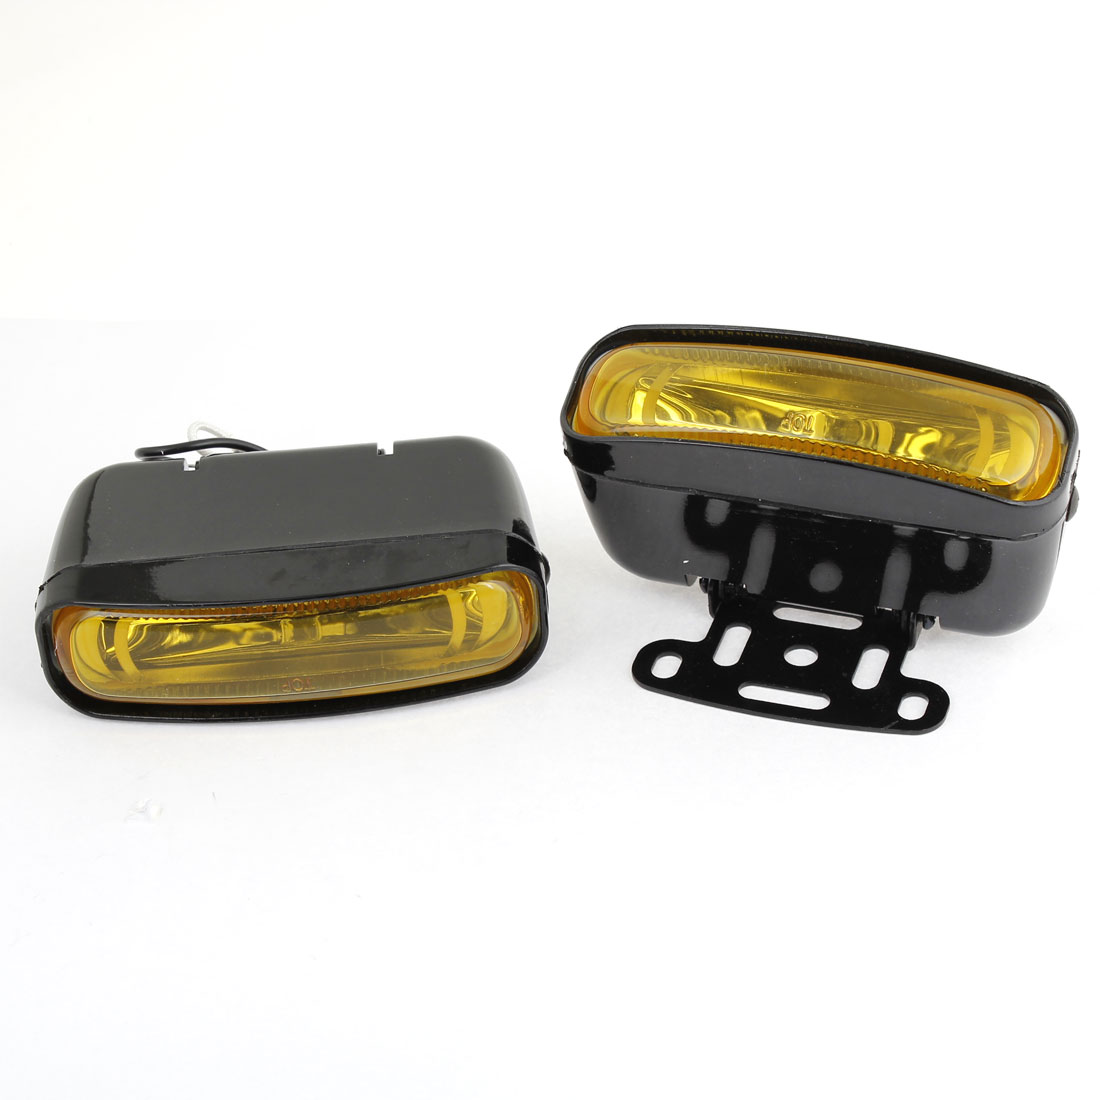 2 Pcs H3 Yellow Driving Fog Light Foglamp Head Lamp for Auto Car